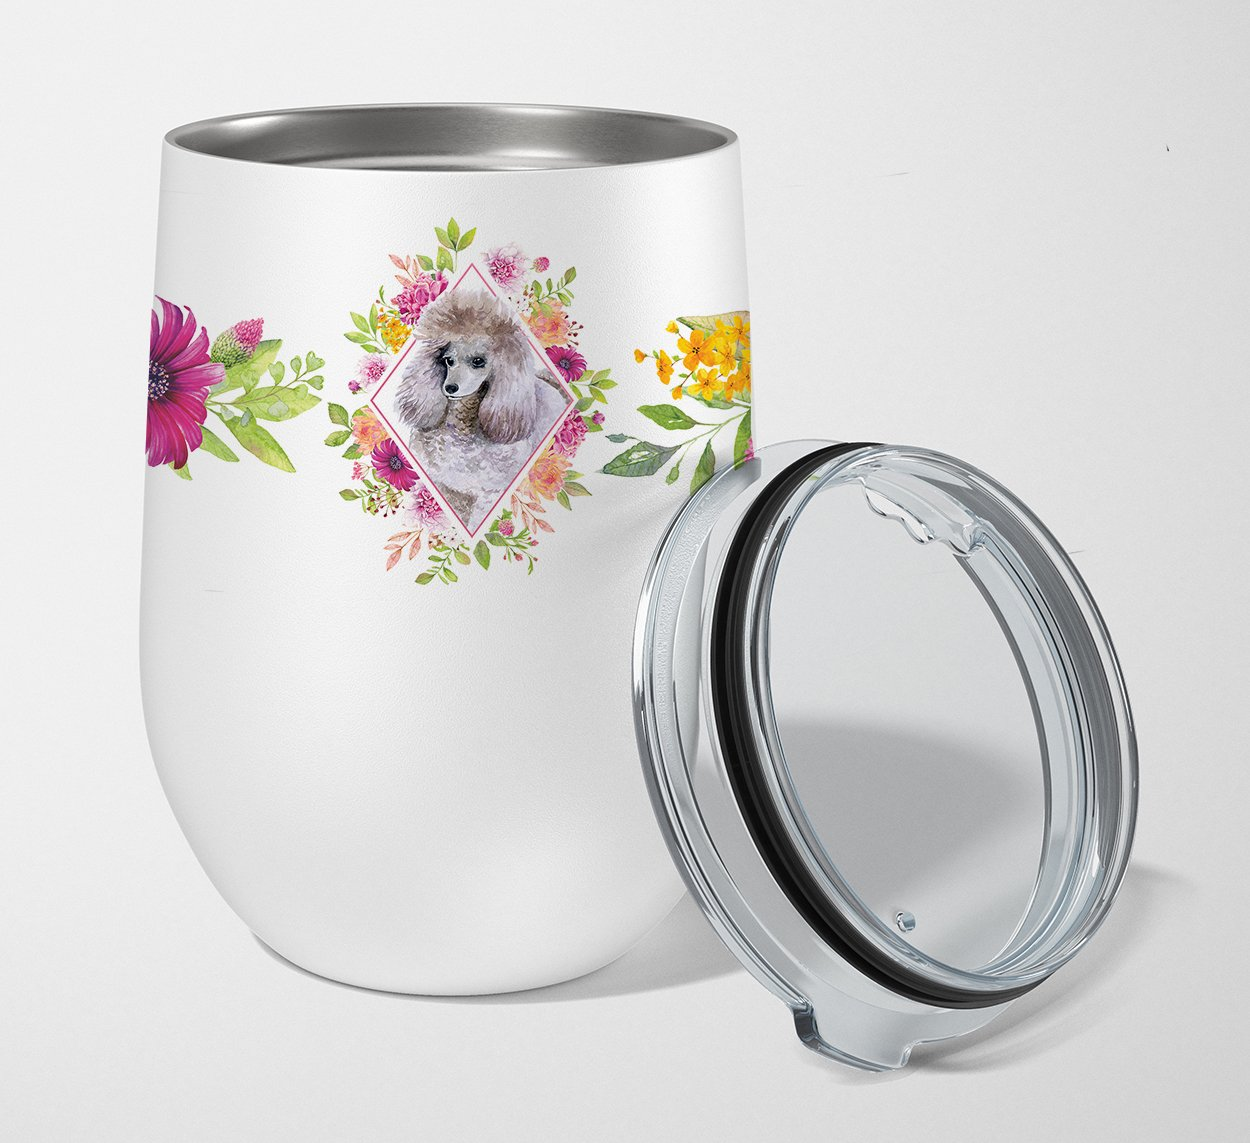 Standard Grey Poodle Pink Flowers Stainless Steel 12 oz Stemless Wine Glass CK4173TBL12 by Caroline's Treasures